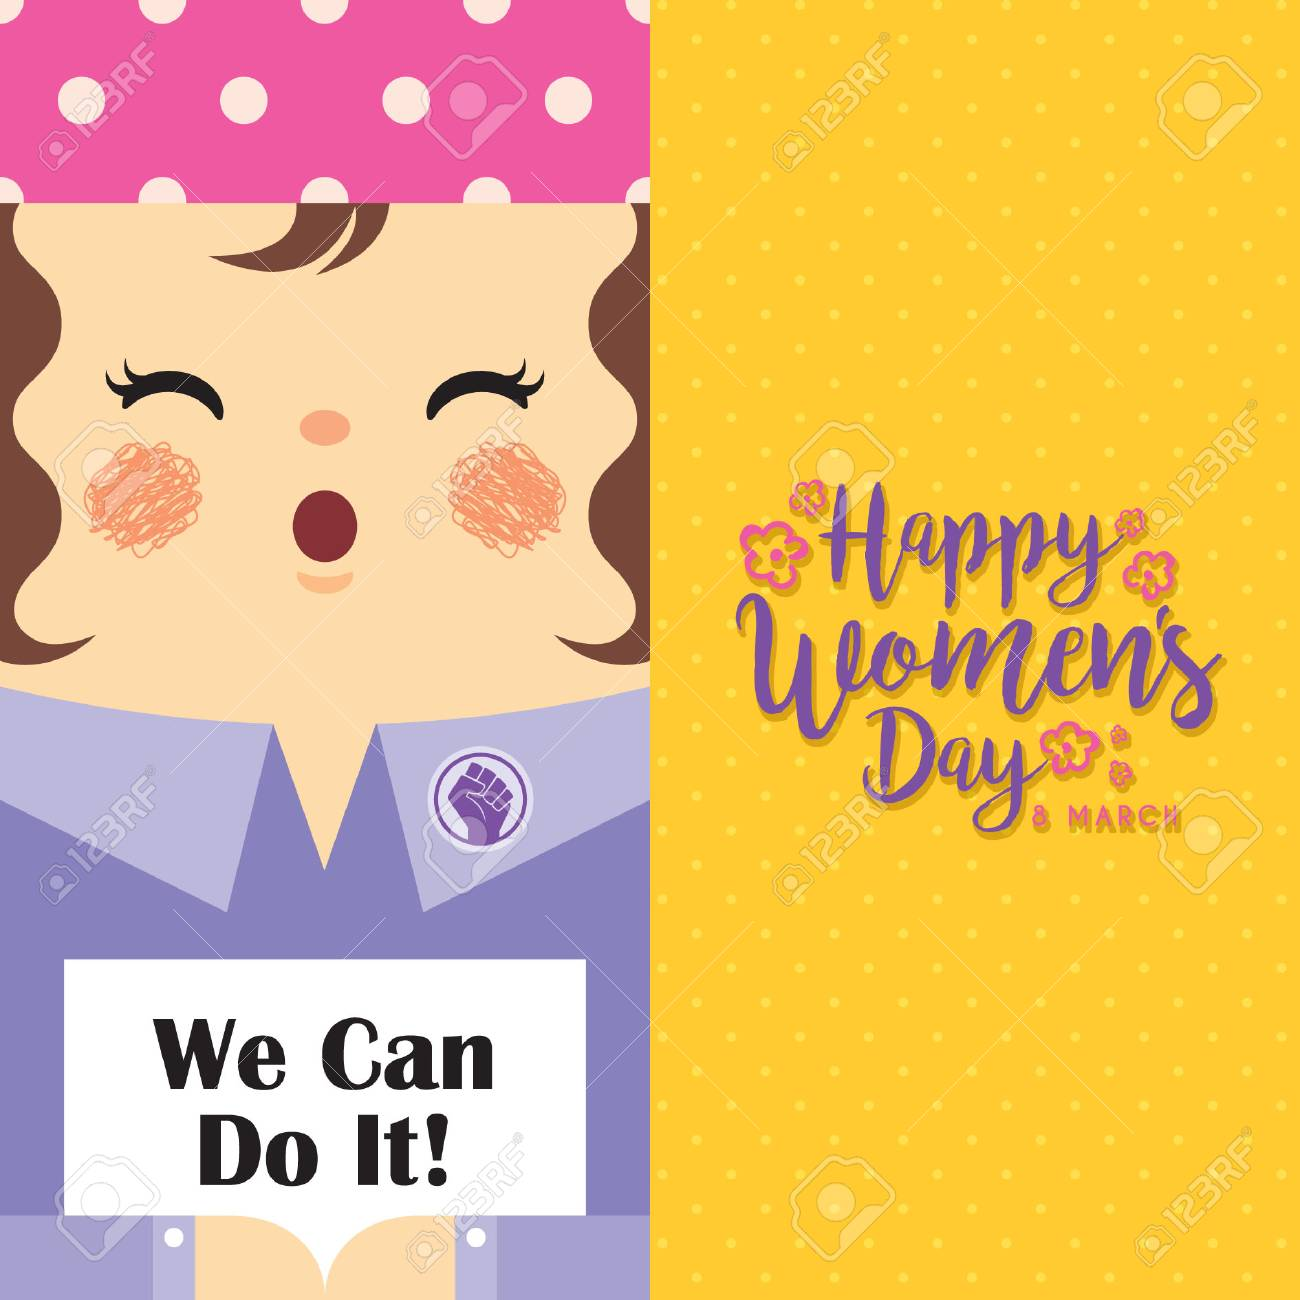 International Women's Day - 8 march template design or copy space